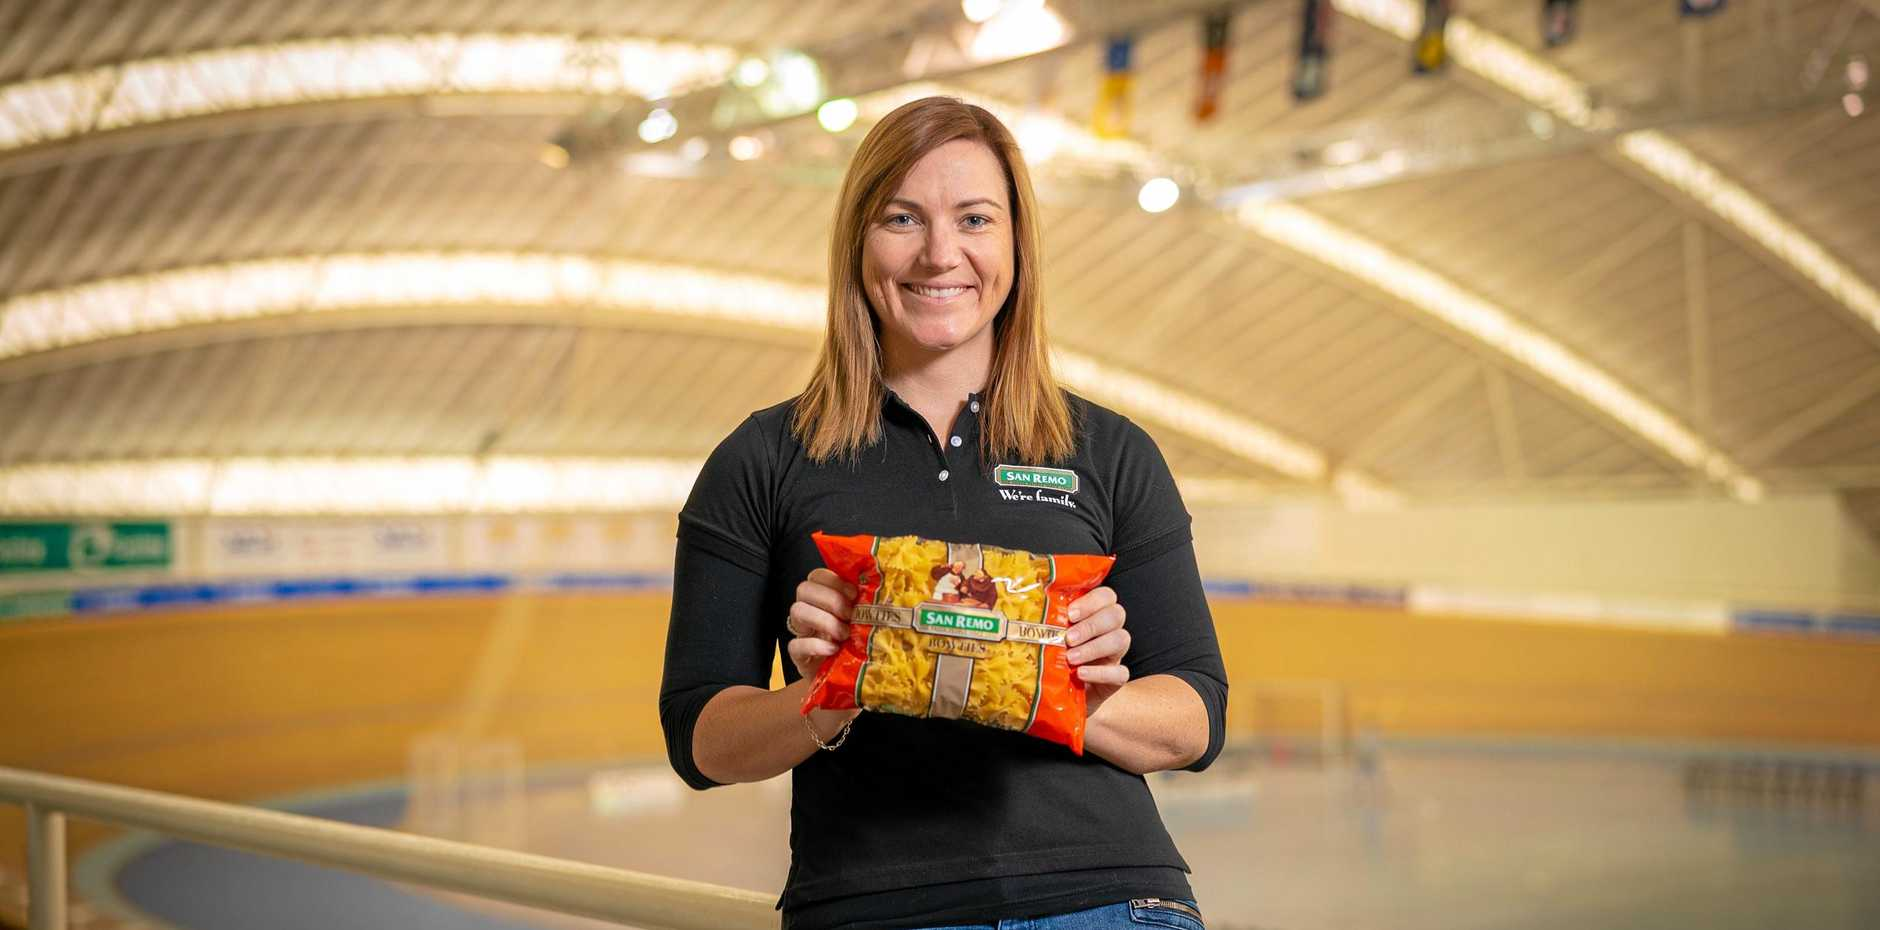 PEDDLING PASTA: Anna Meares is working with San Remo to promote the benefits of having carbohydrates, such as pasta, in your diet.